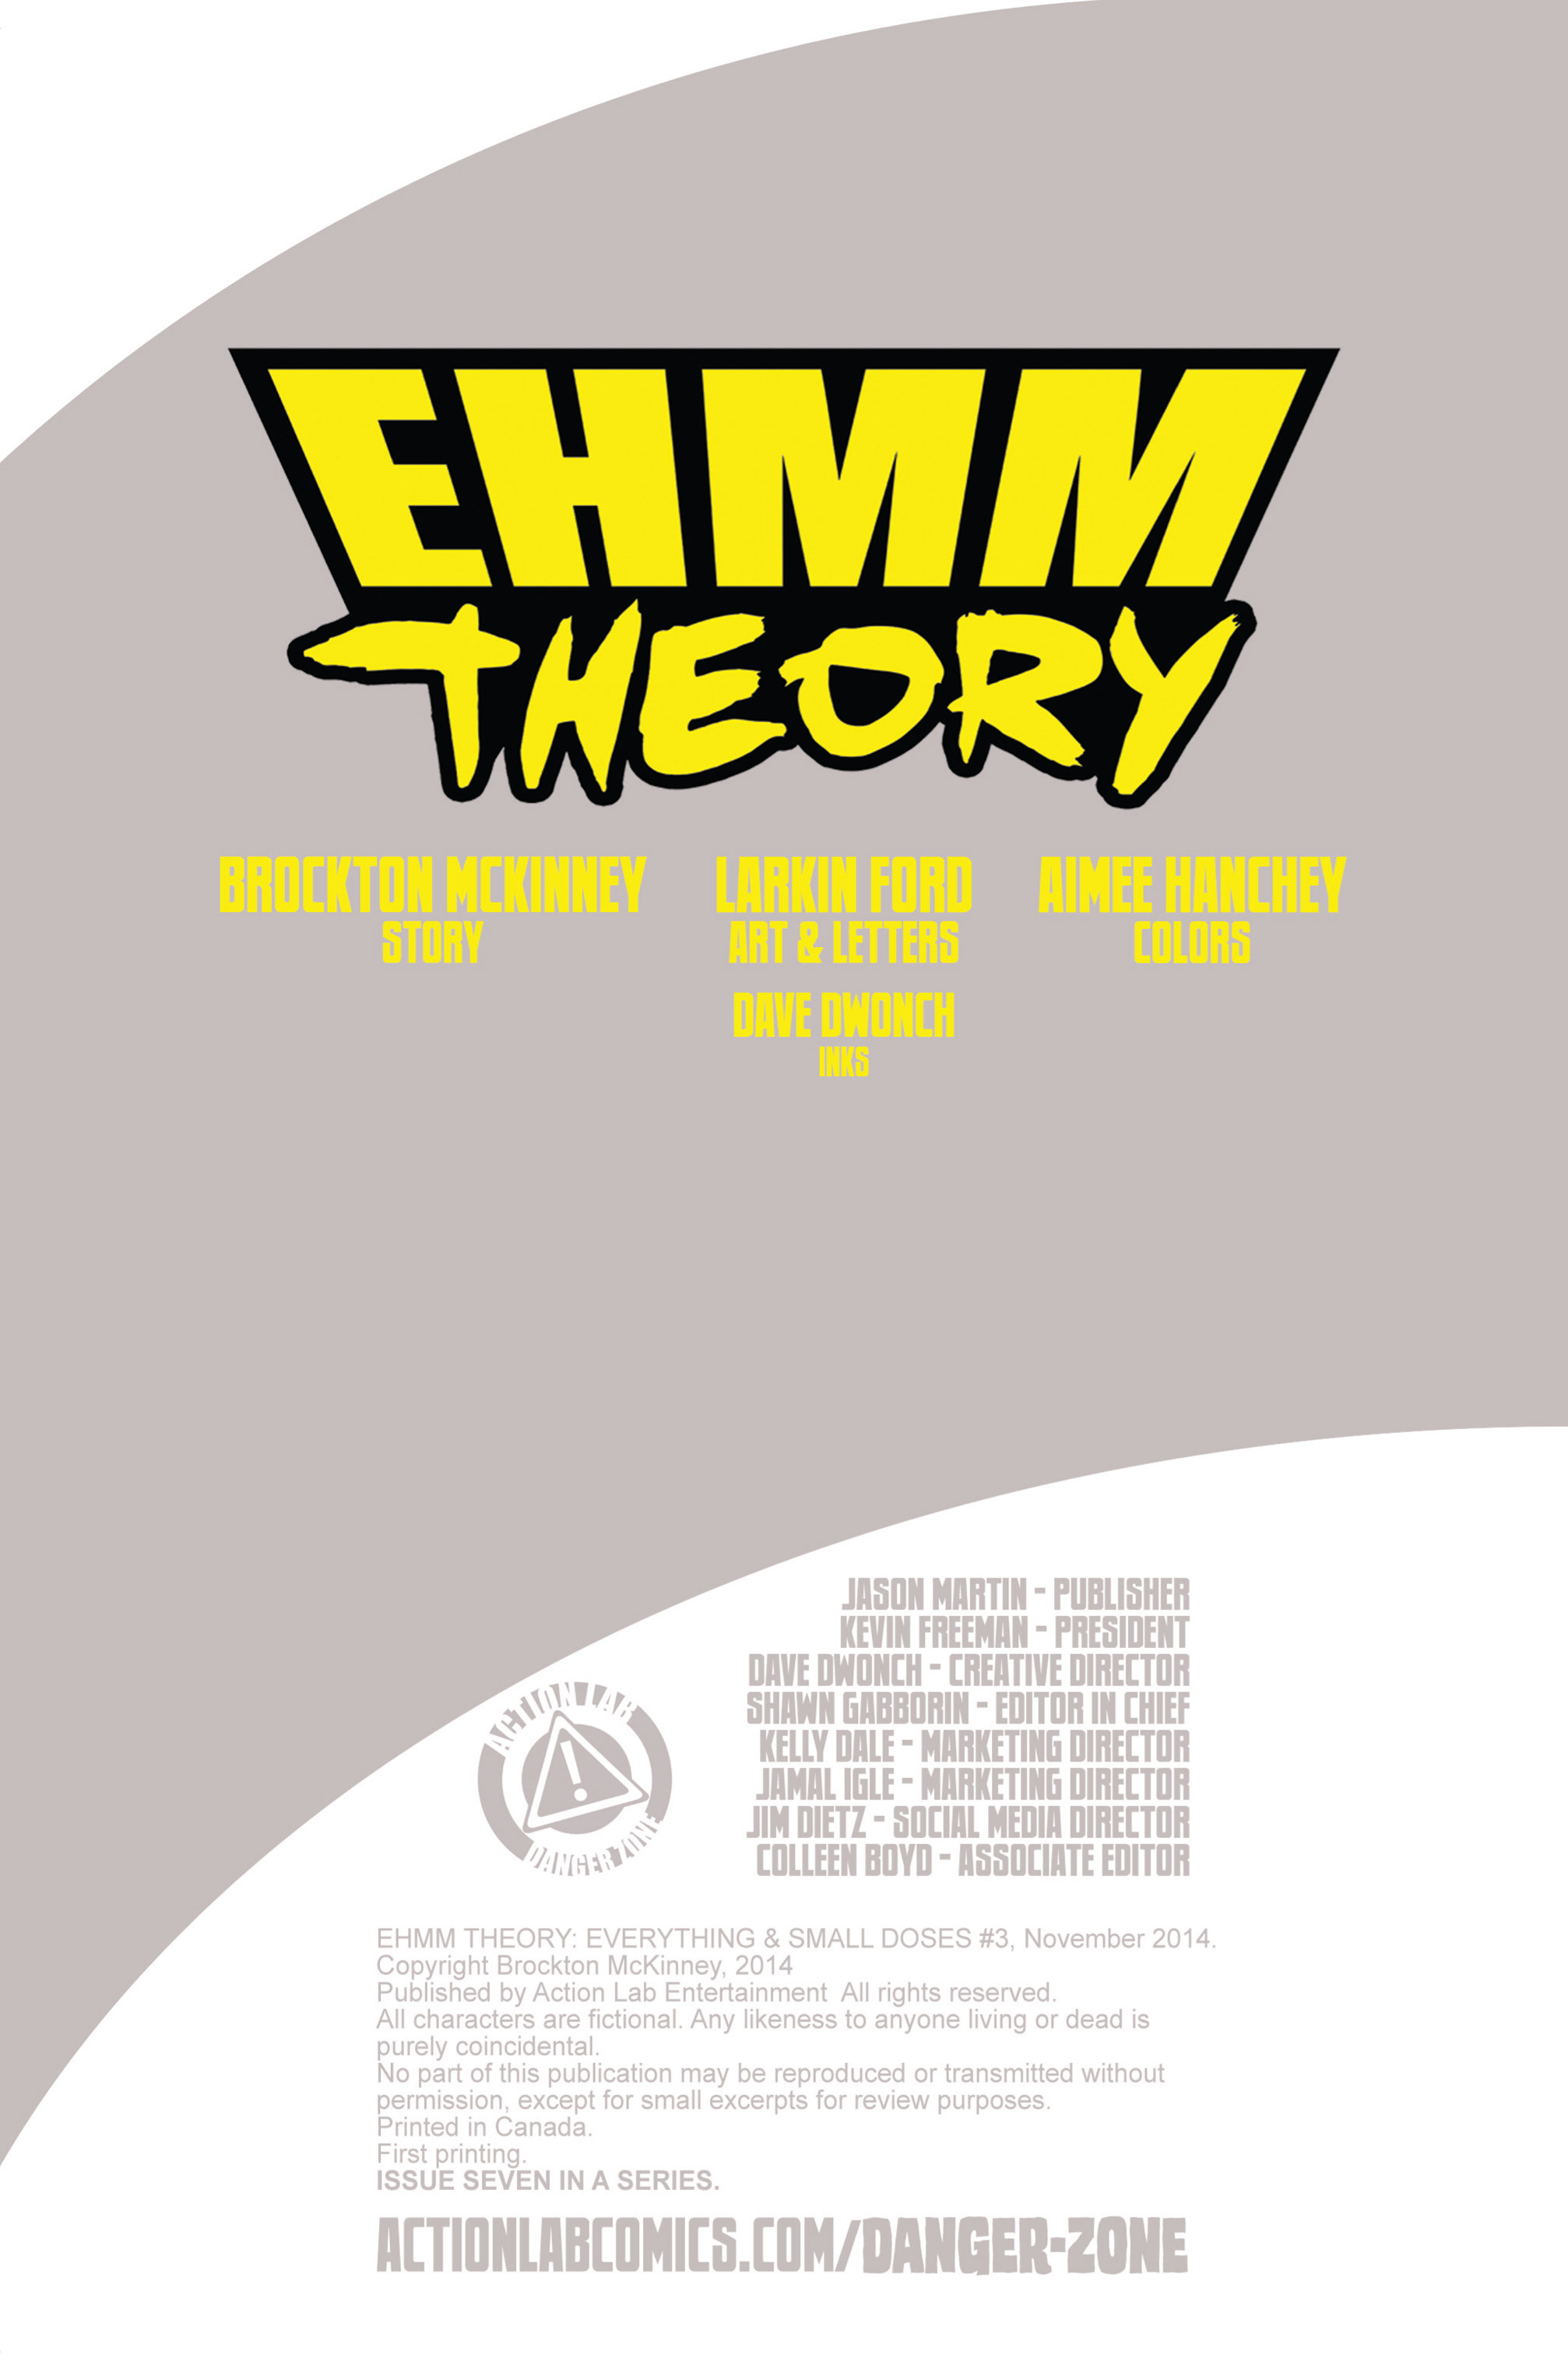 Read online Ehmm Theory: Everything & Small Doses comic -  Issue #3 - 2